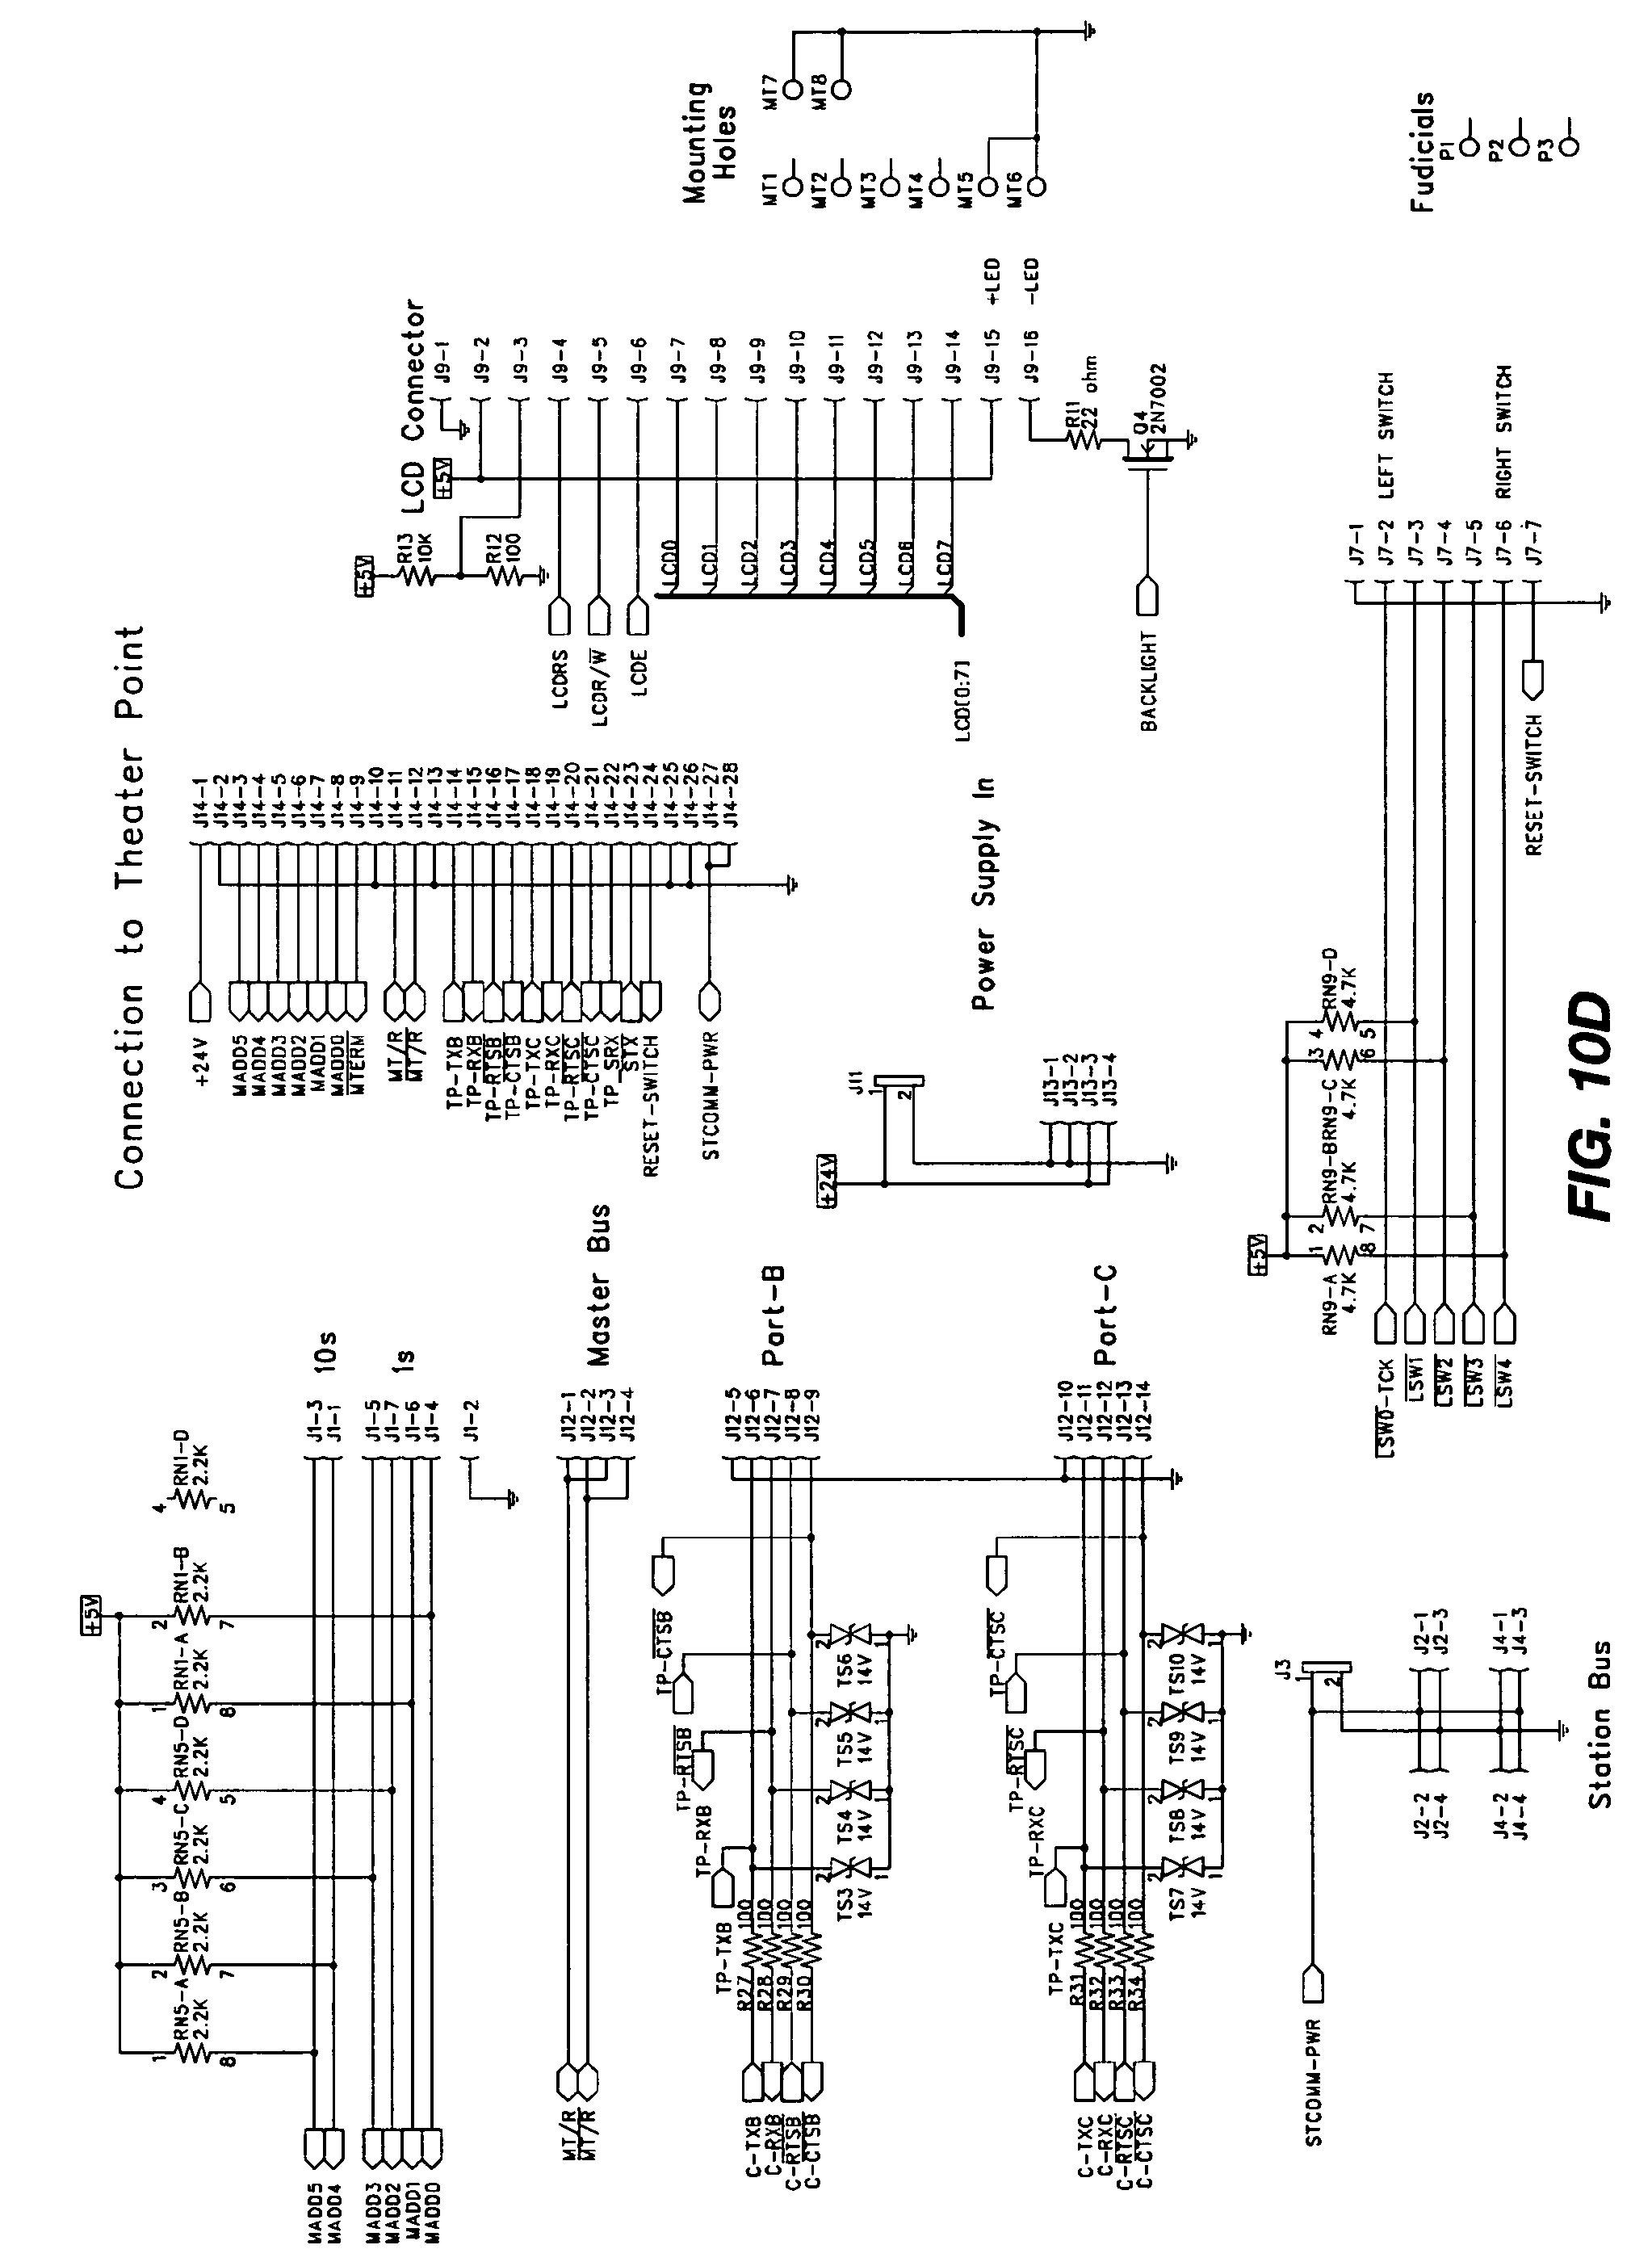 Omron 24vdc Relay Schematic Further Led To T8 Ballast Wiring Diagram